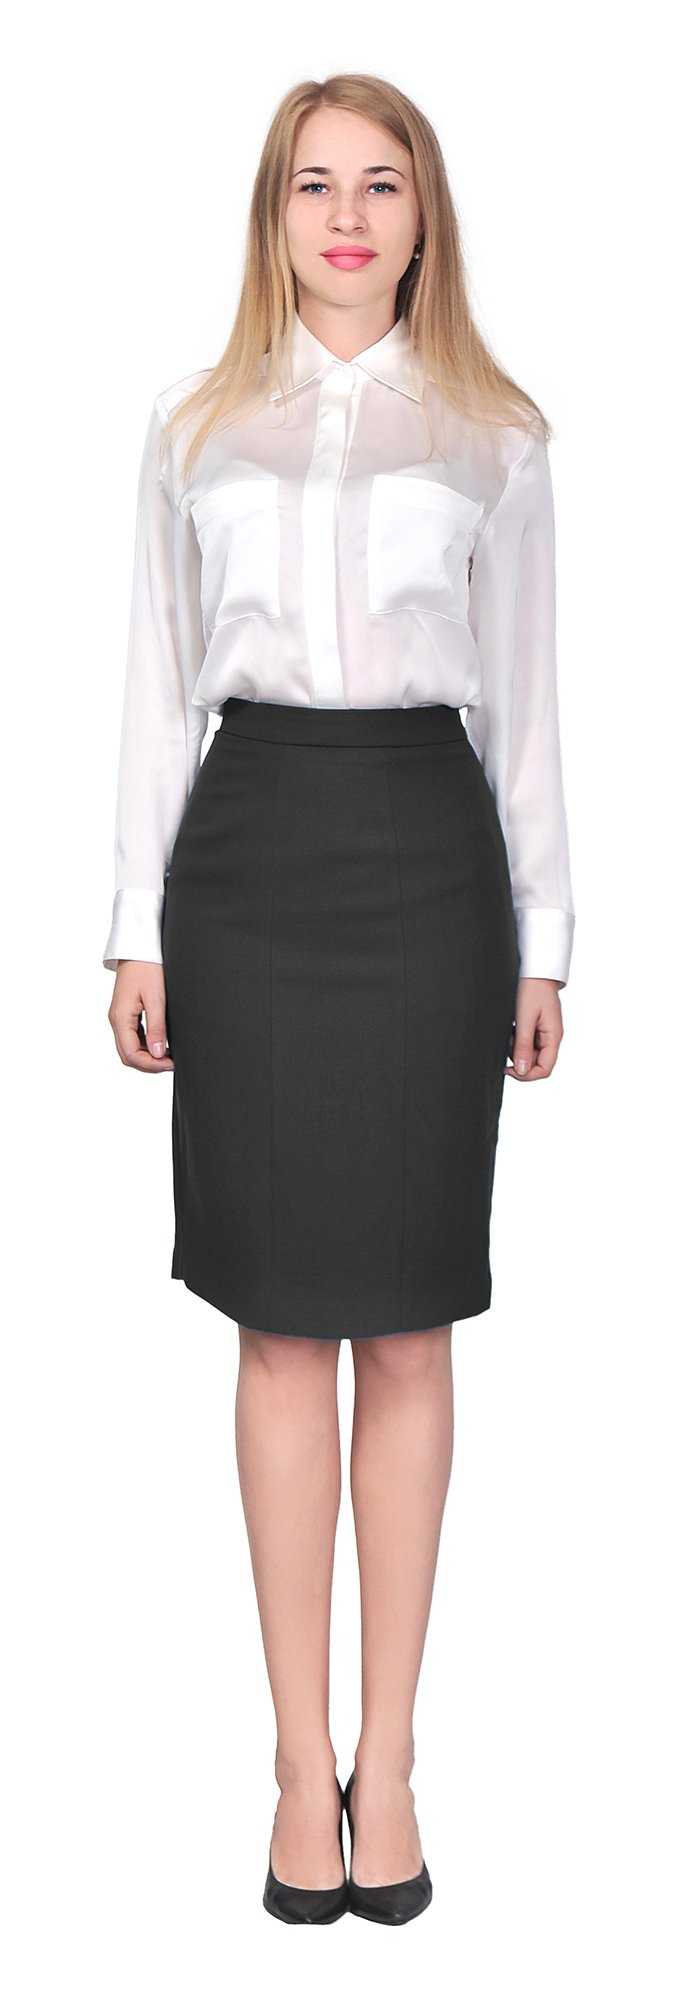 Marycrafts Women's Lined Pencil Skirt 4 Work Business Office 2 black by Marycrafts (Image #3)